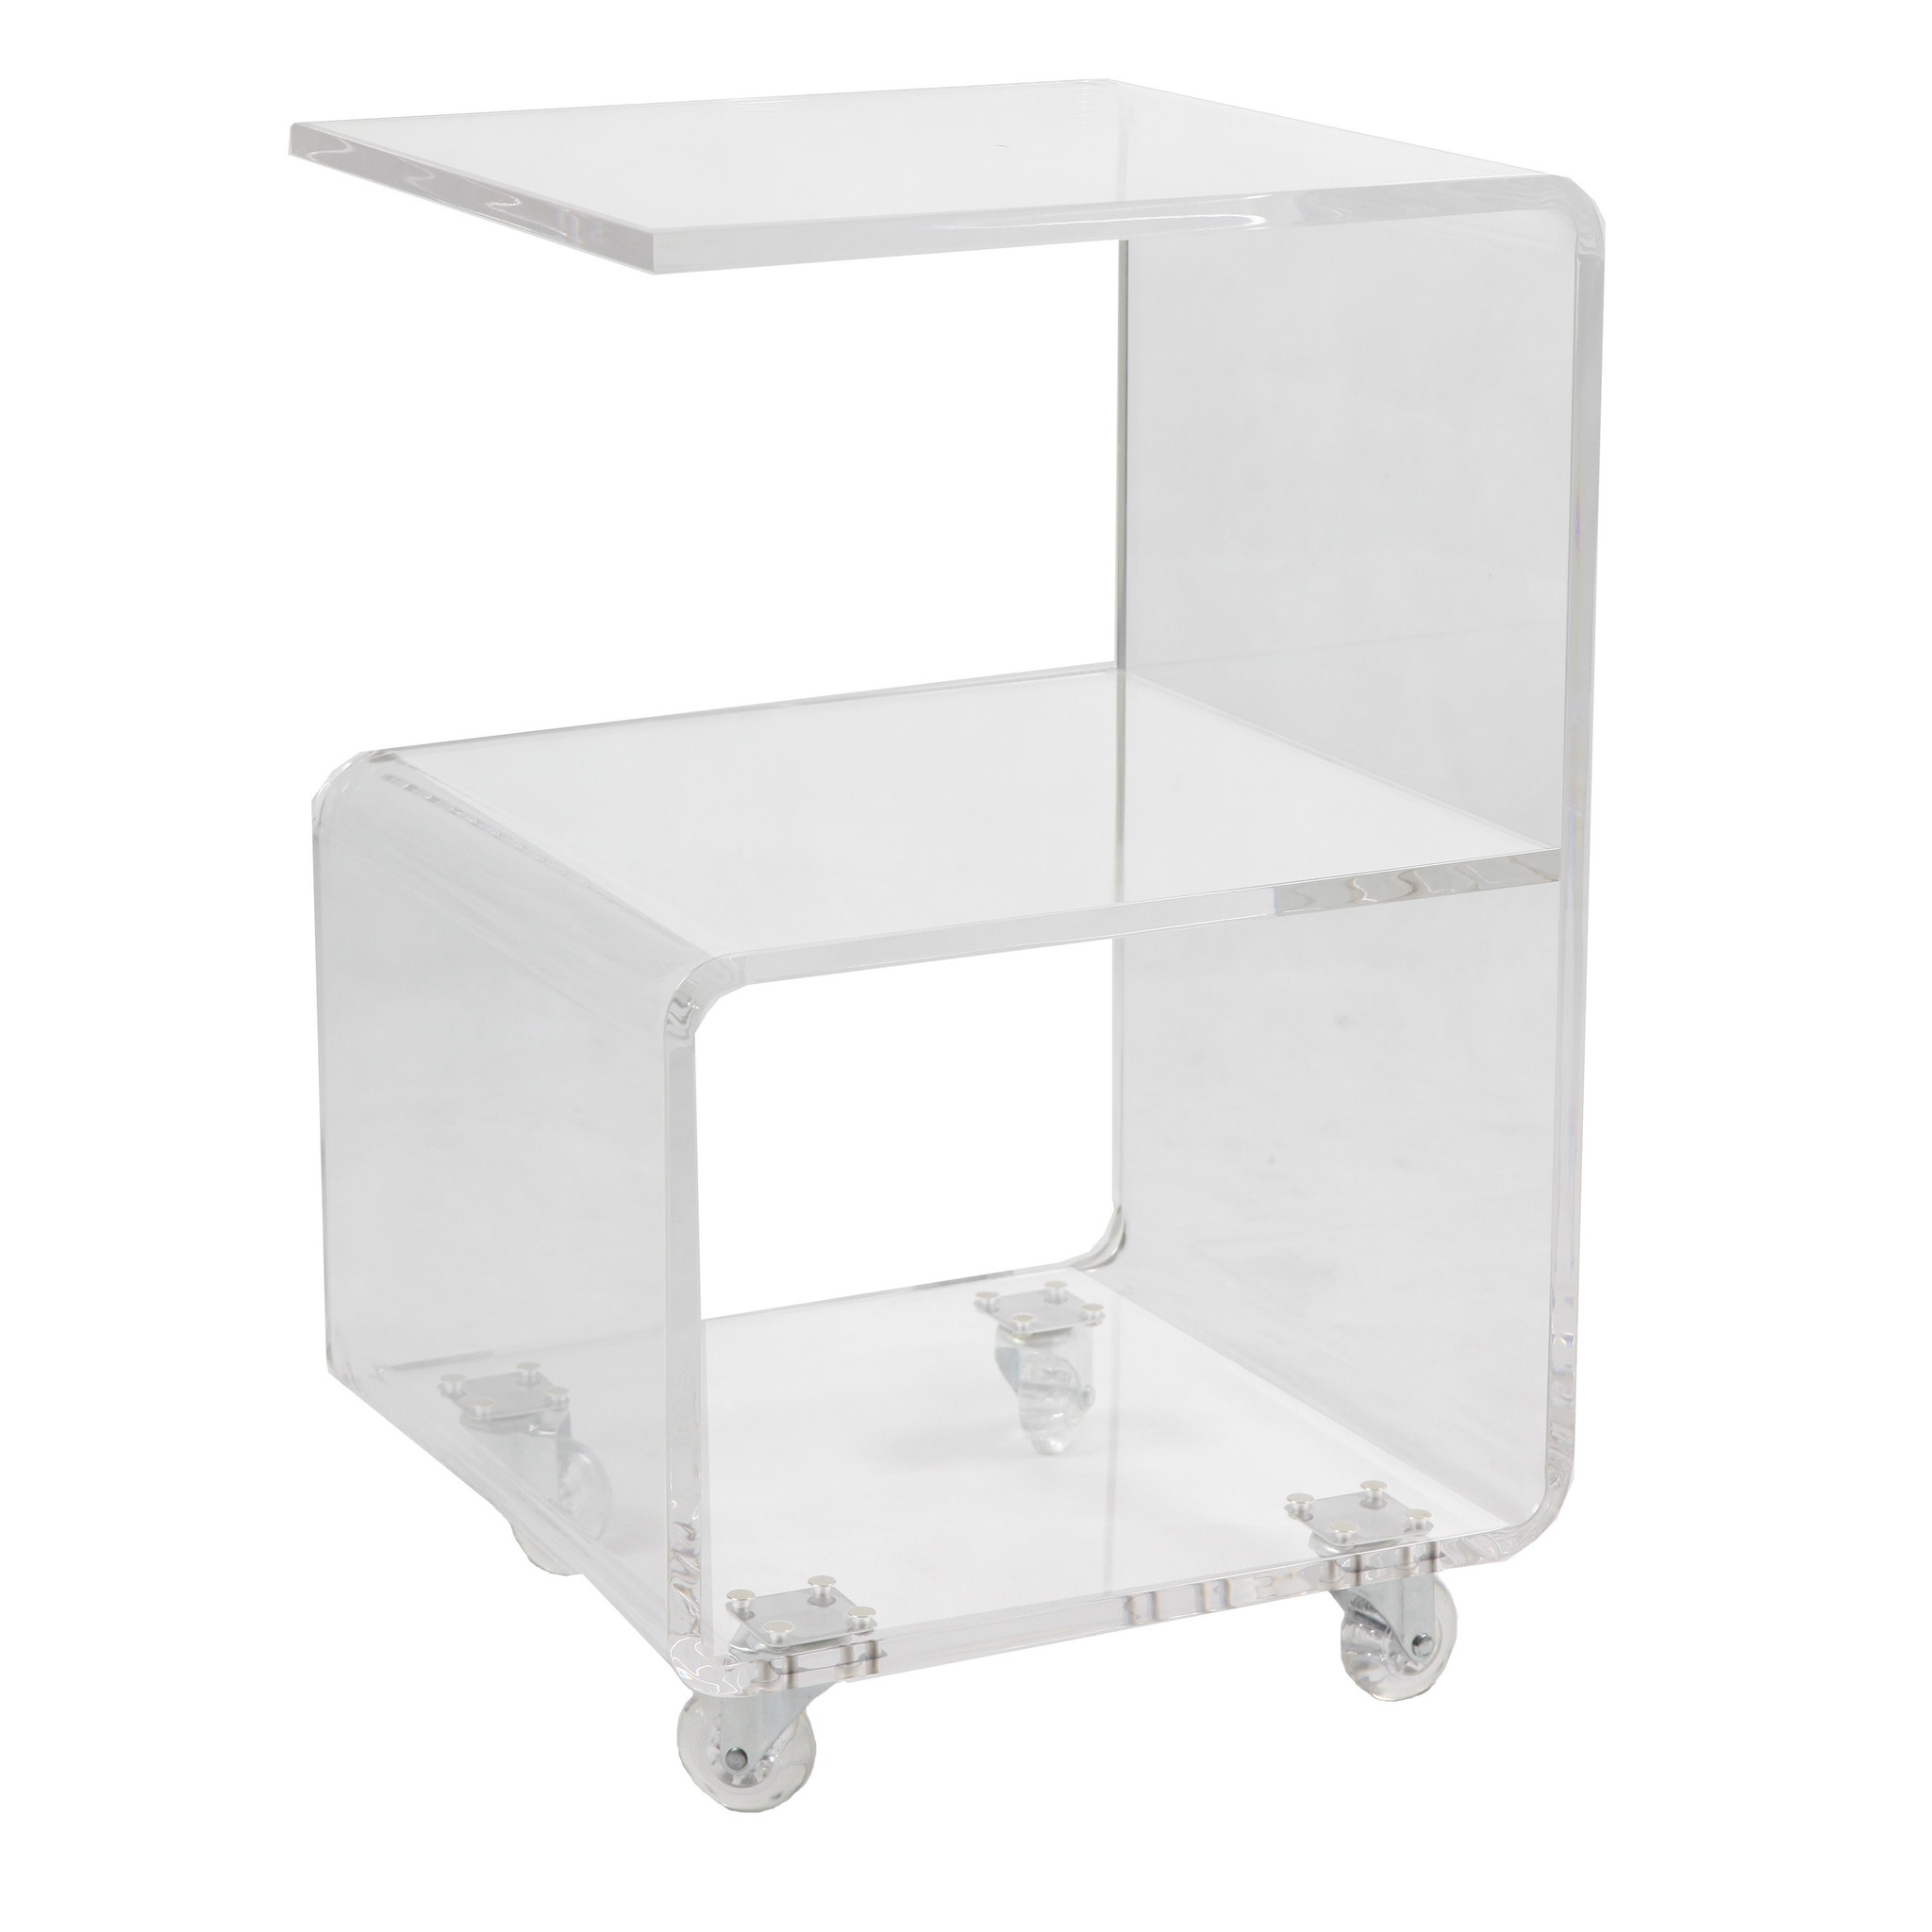 Clear Lucite Storage Side Table on Wheels rolling storage accent